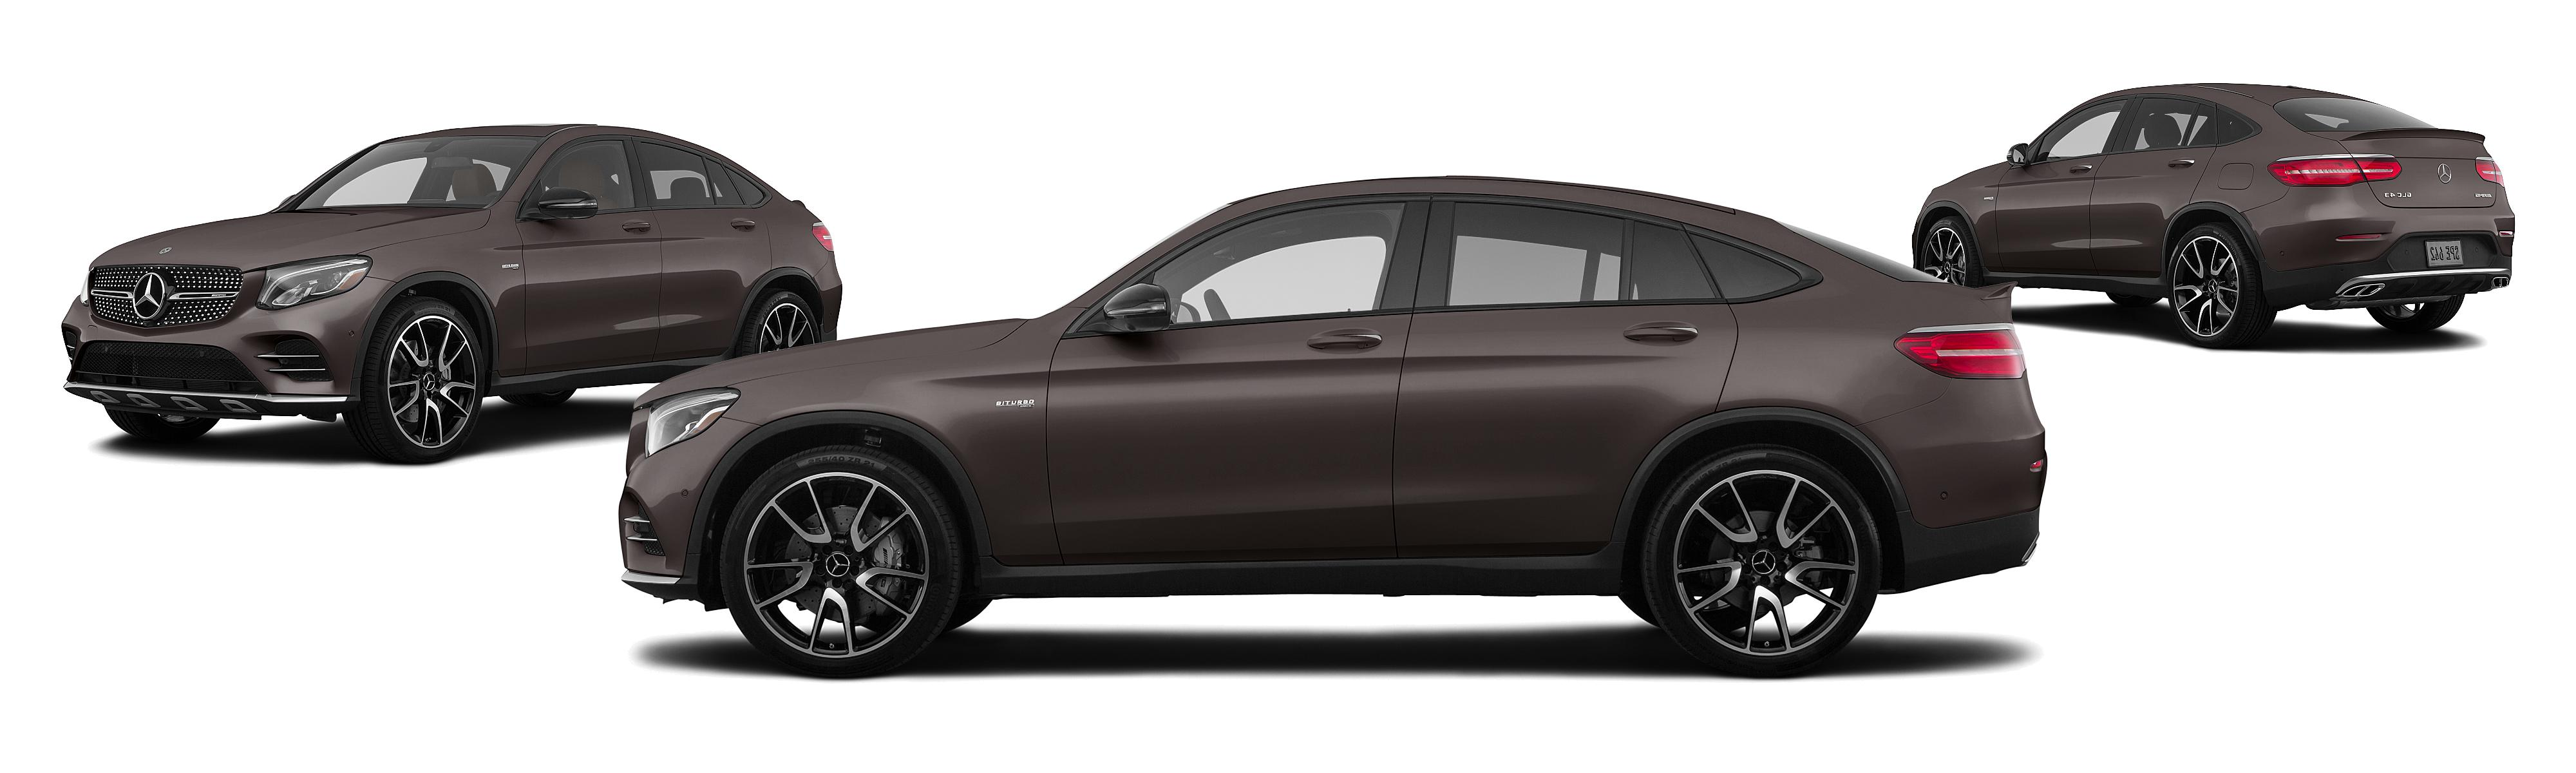 2017 Mercedes Benz Glc Awd Amg Glc 43 Coupe 4matic 4dr Suv Research Groovecar